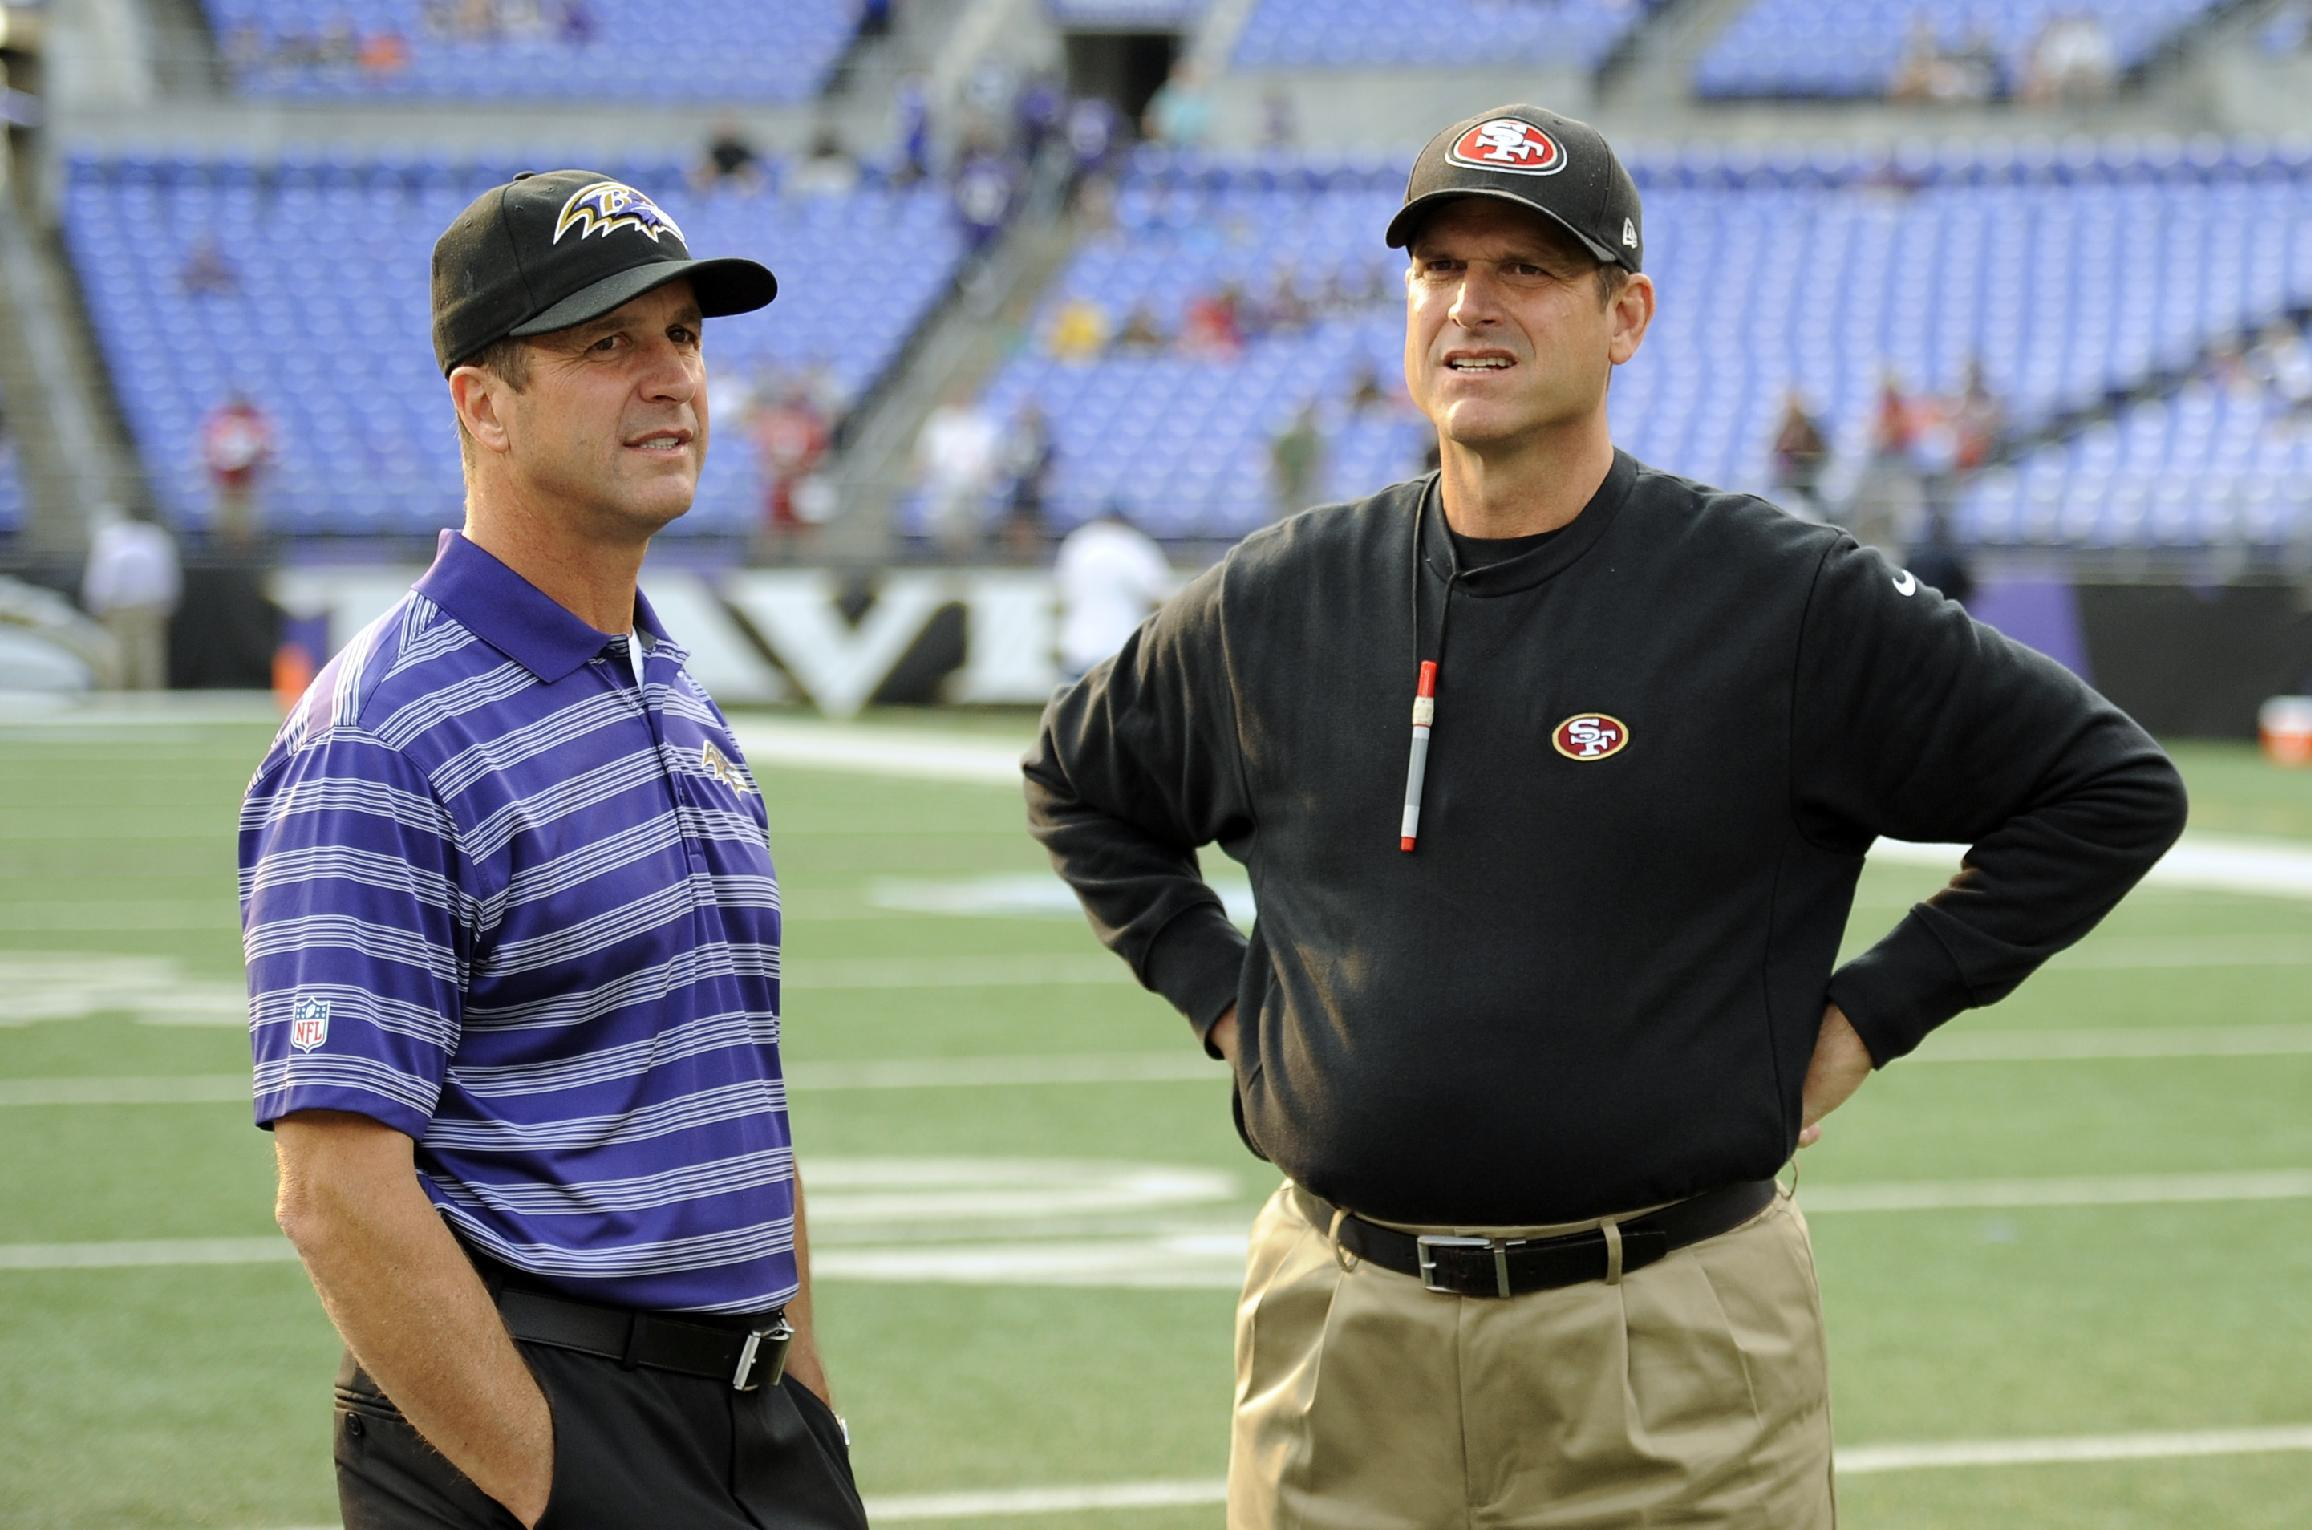 Detroit paper mixes up Jim and John Harbaugh on front page (Photo)